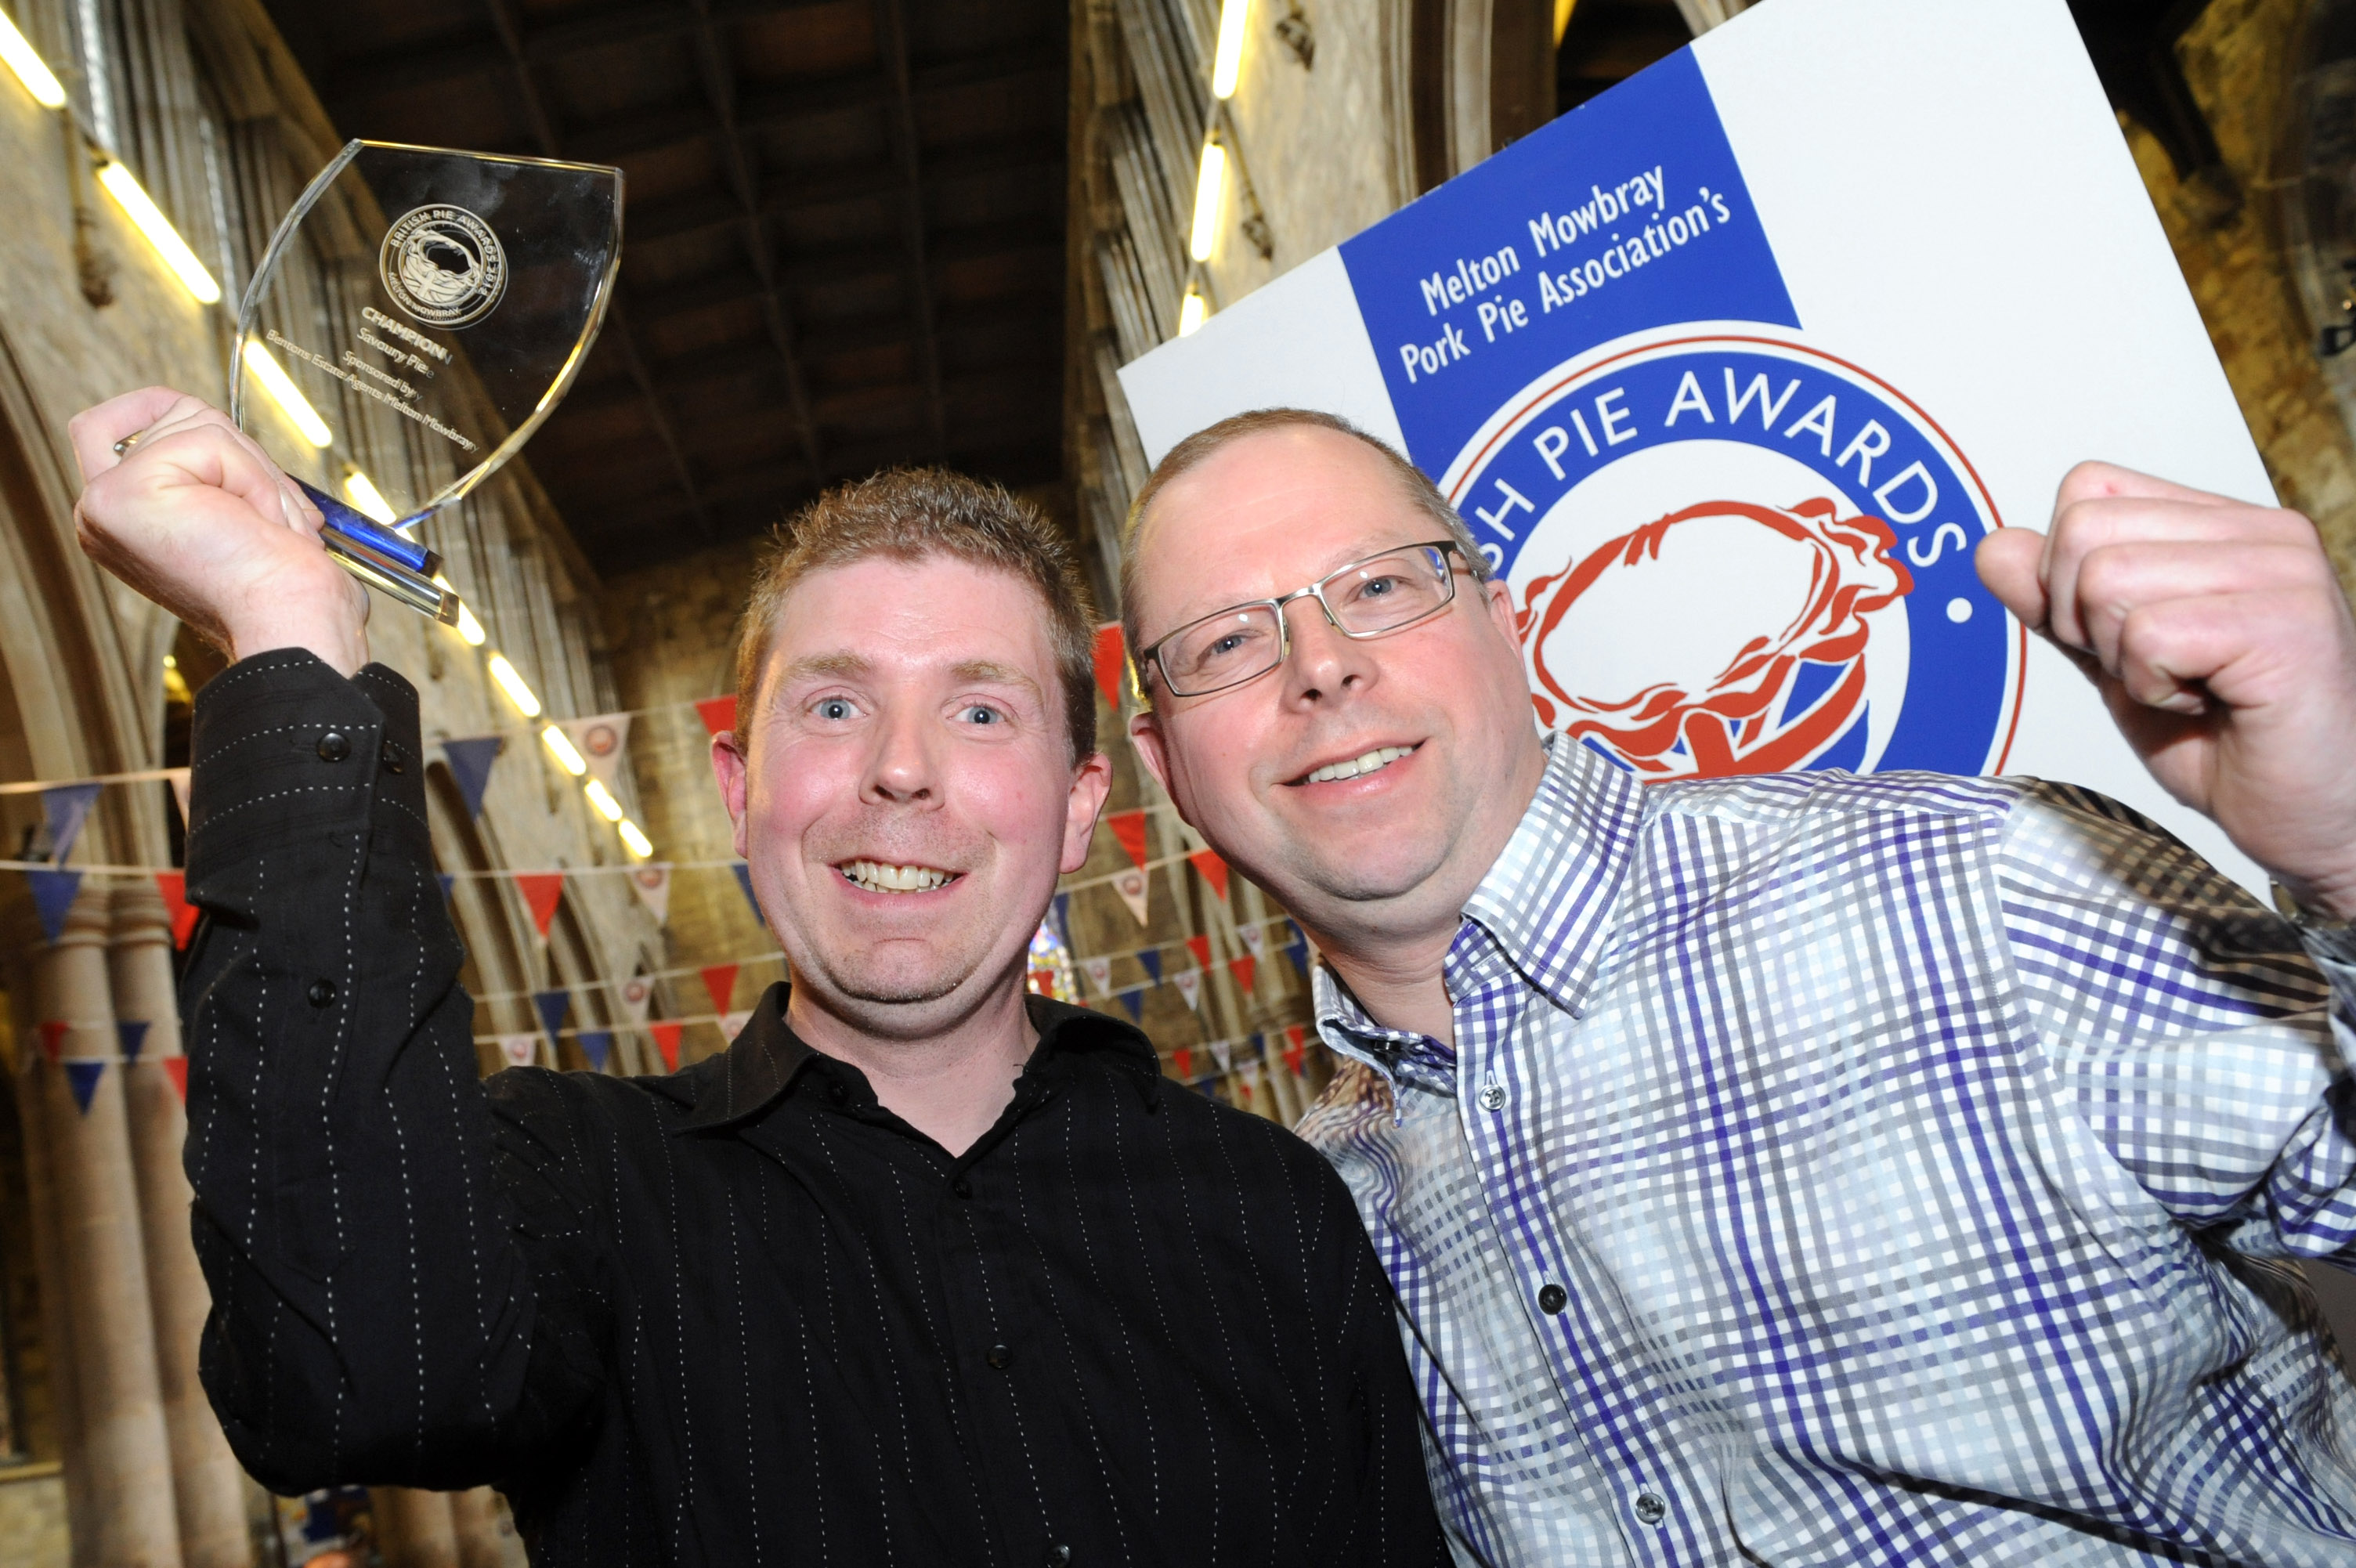 2012 British Pie Awards 616